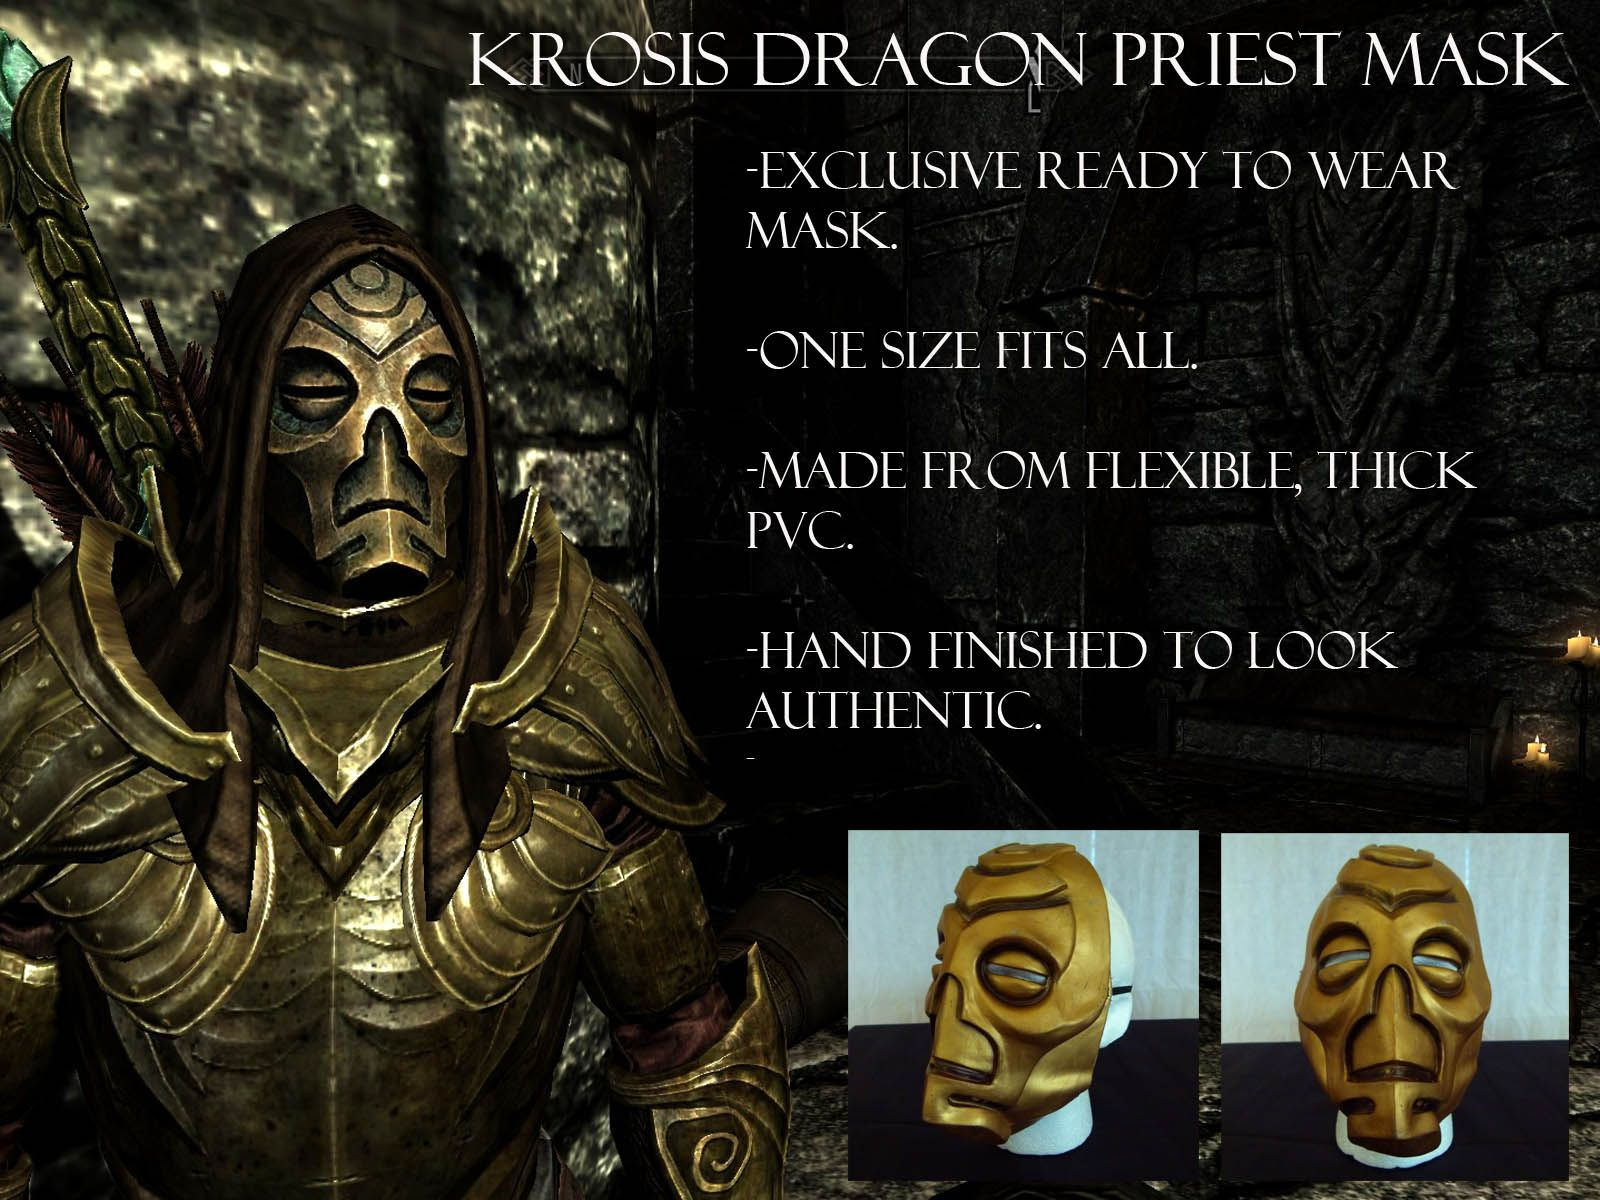 Skyrim Mask ebay cosplay Dragon Priest Dragonpriest Krosis ...